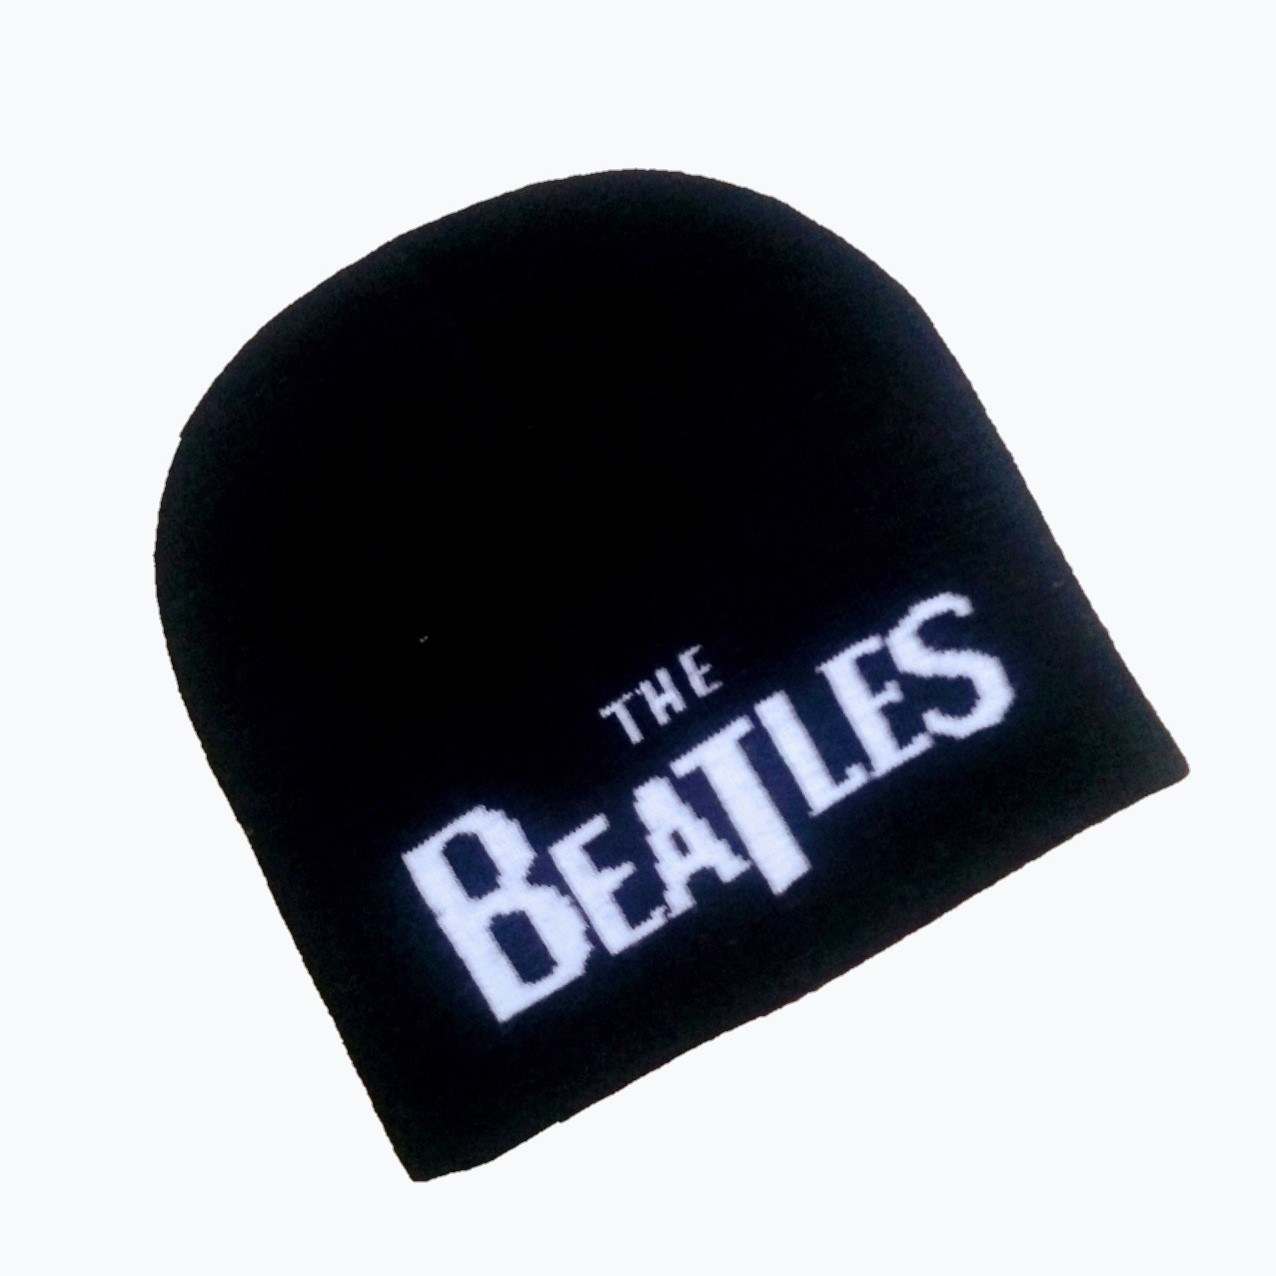 Gorro de lã Touca unissex The Beatles